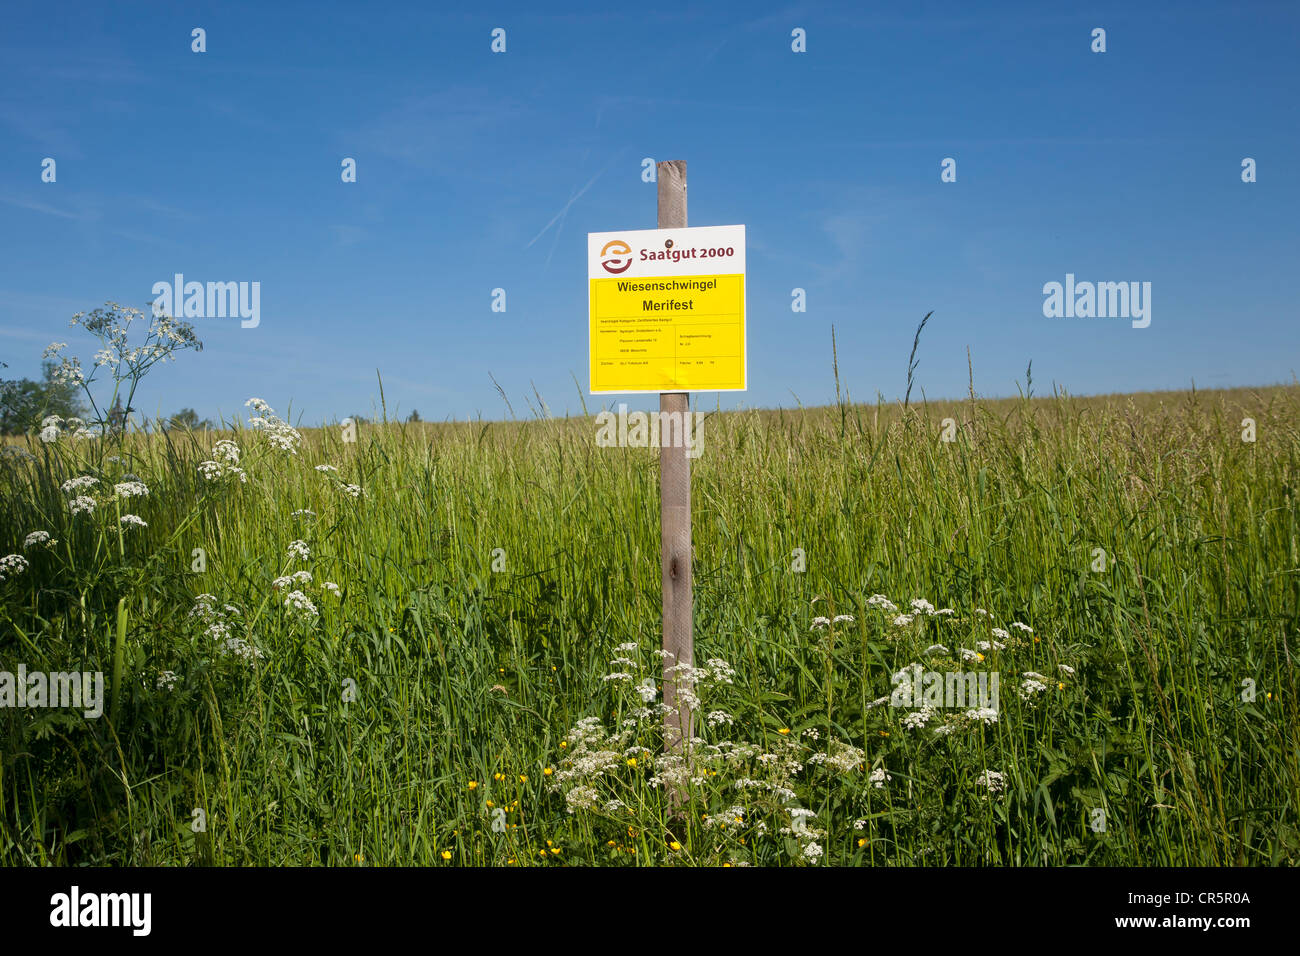 Experimental fields for certified seeds, Vogtland region, Saxony, Germany, Europe - Stock Image